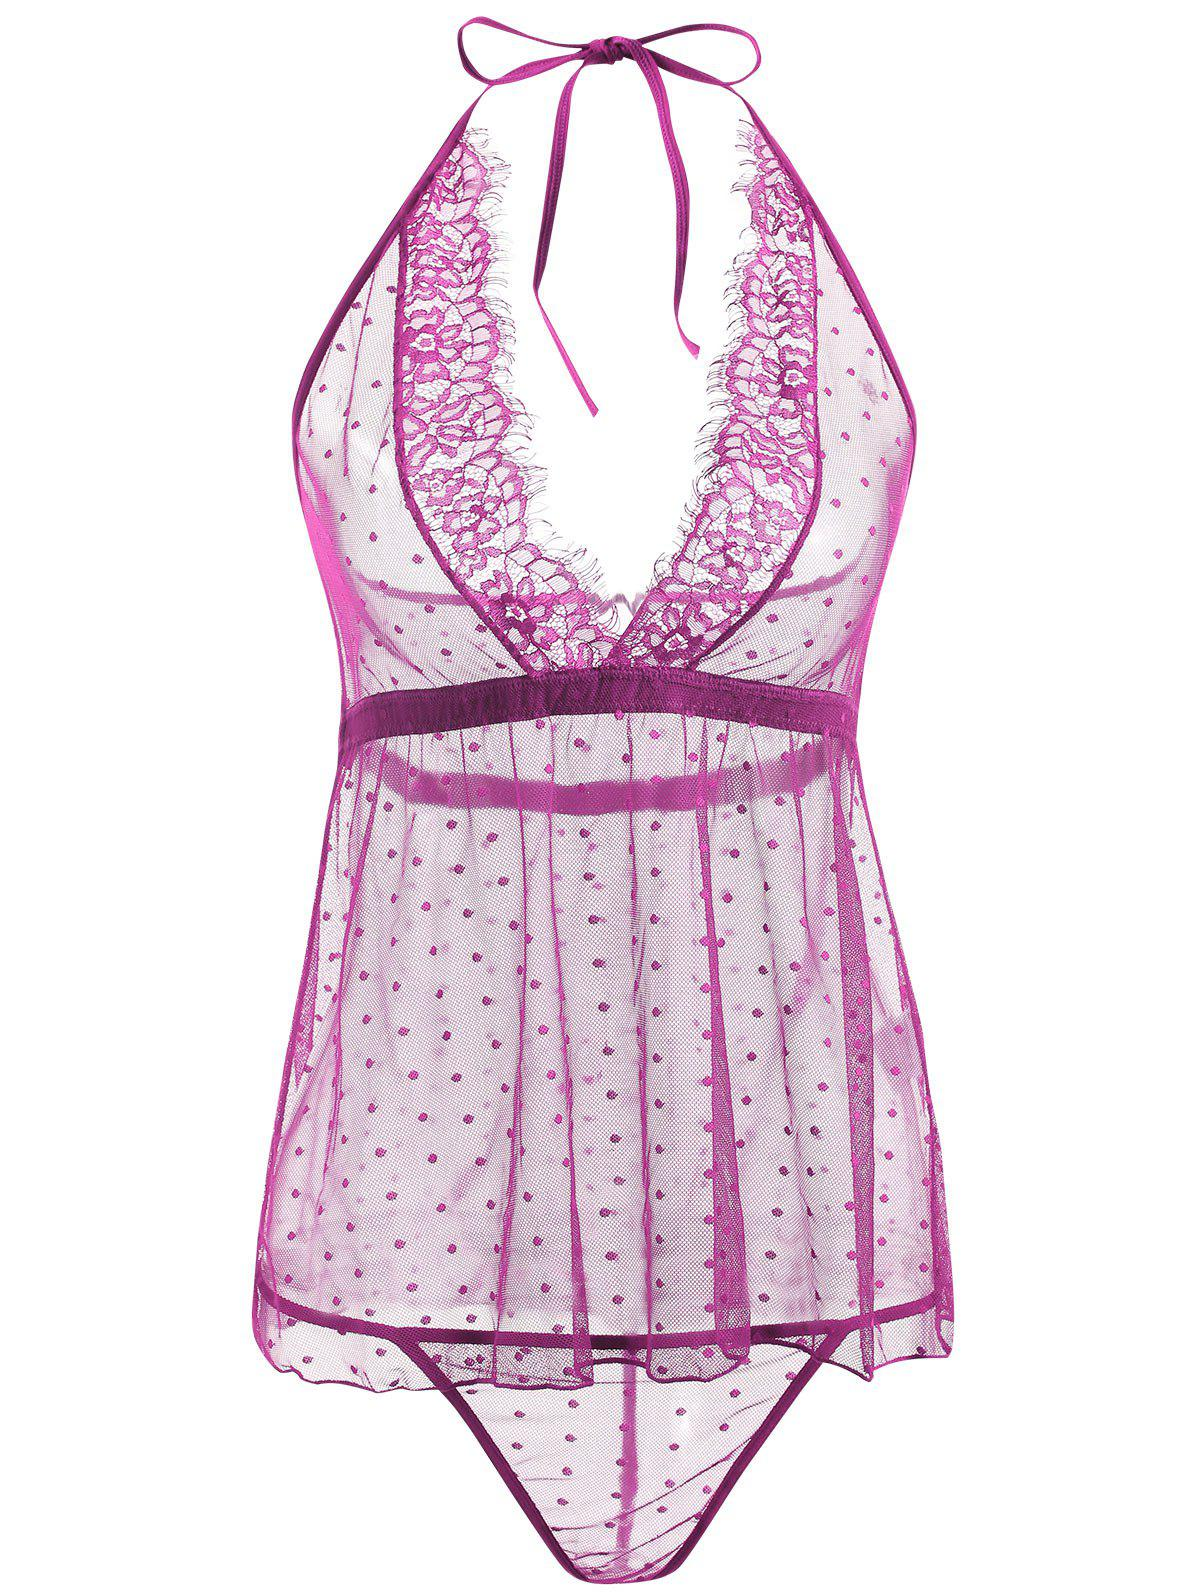 Lace Sheer Low Back Babydoll - PURPLE XL